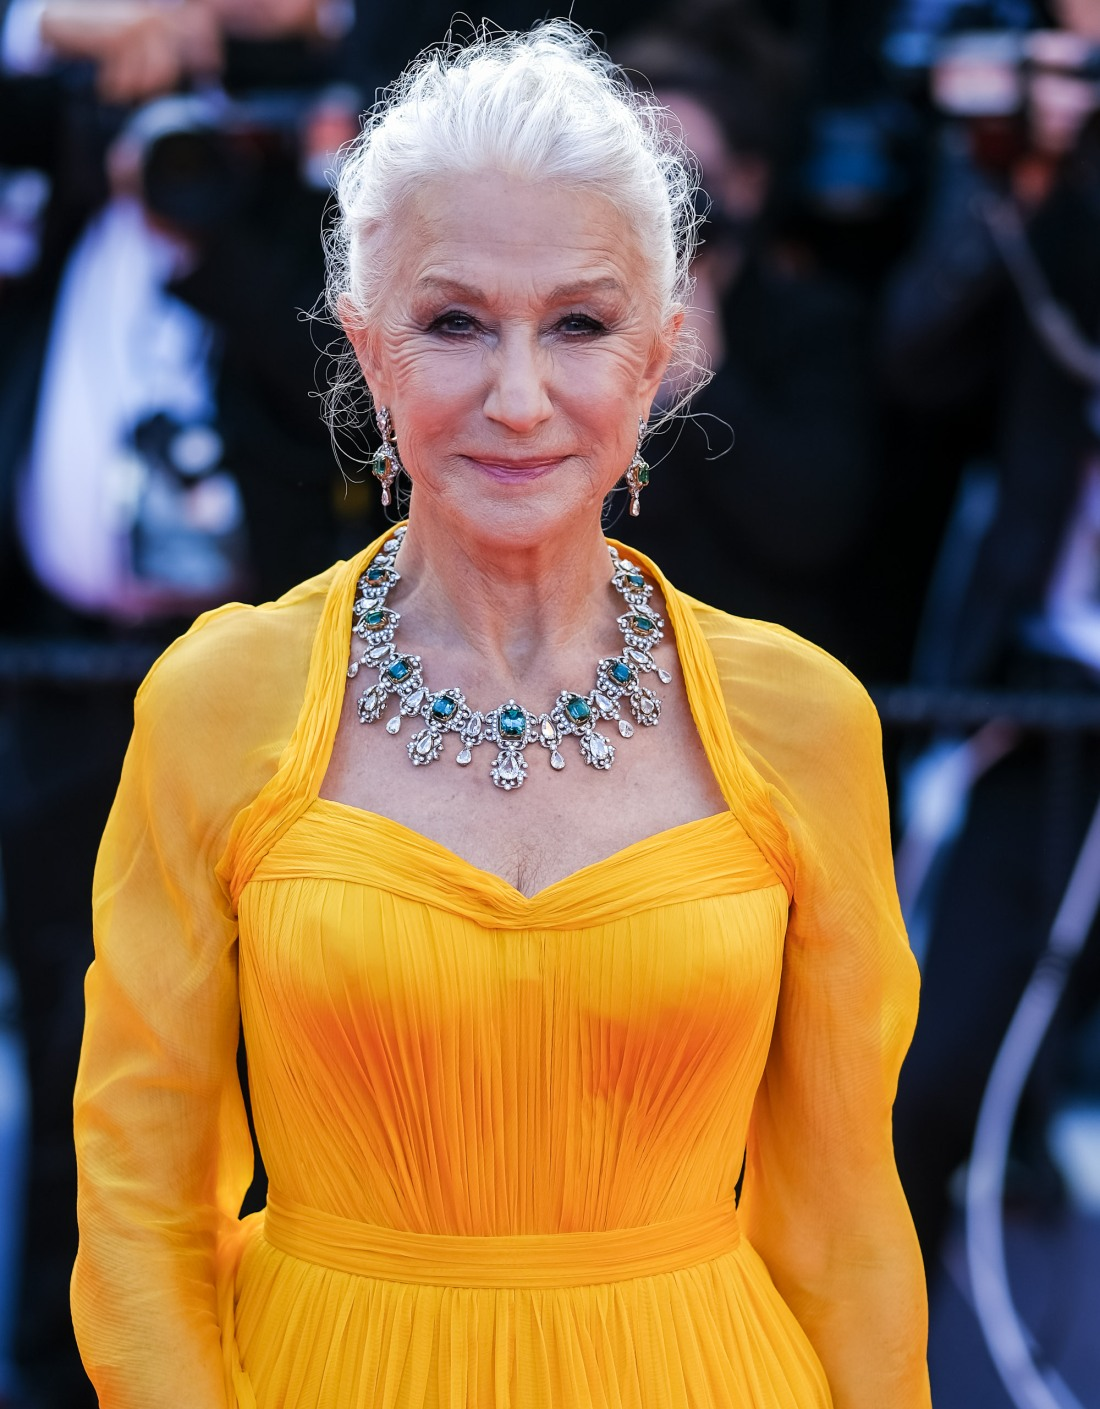 Helen Mirren poses at the Red Carpet for the Opening Night Film - Annettee during the 74th Cannes International Film Festival on Tuesday 6 July 2021